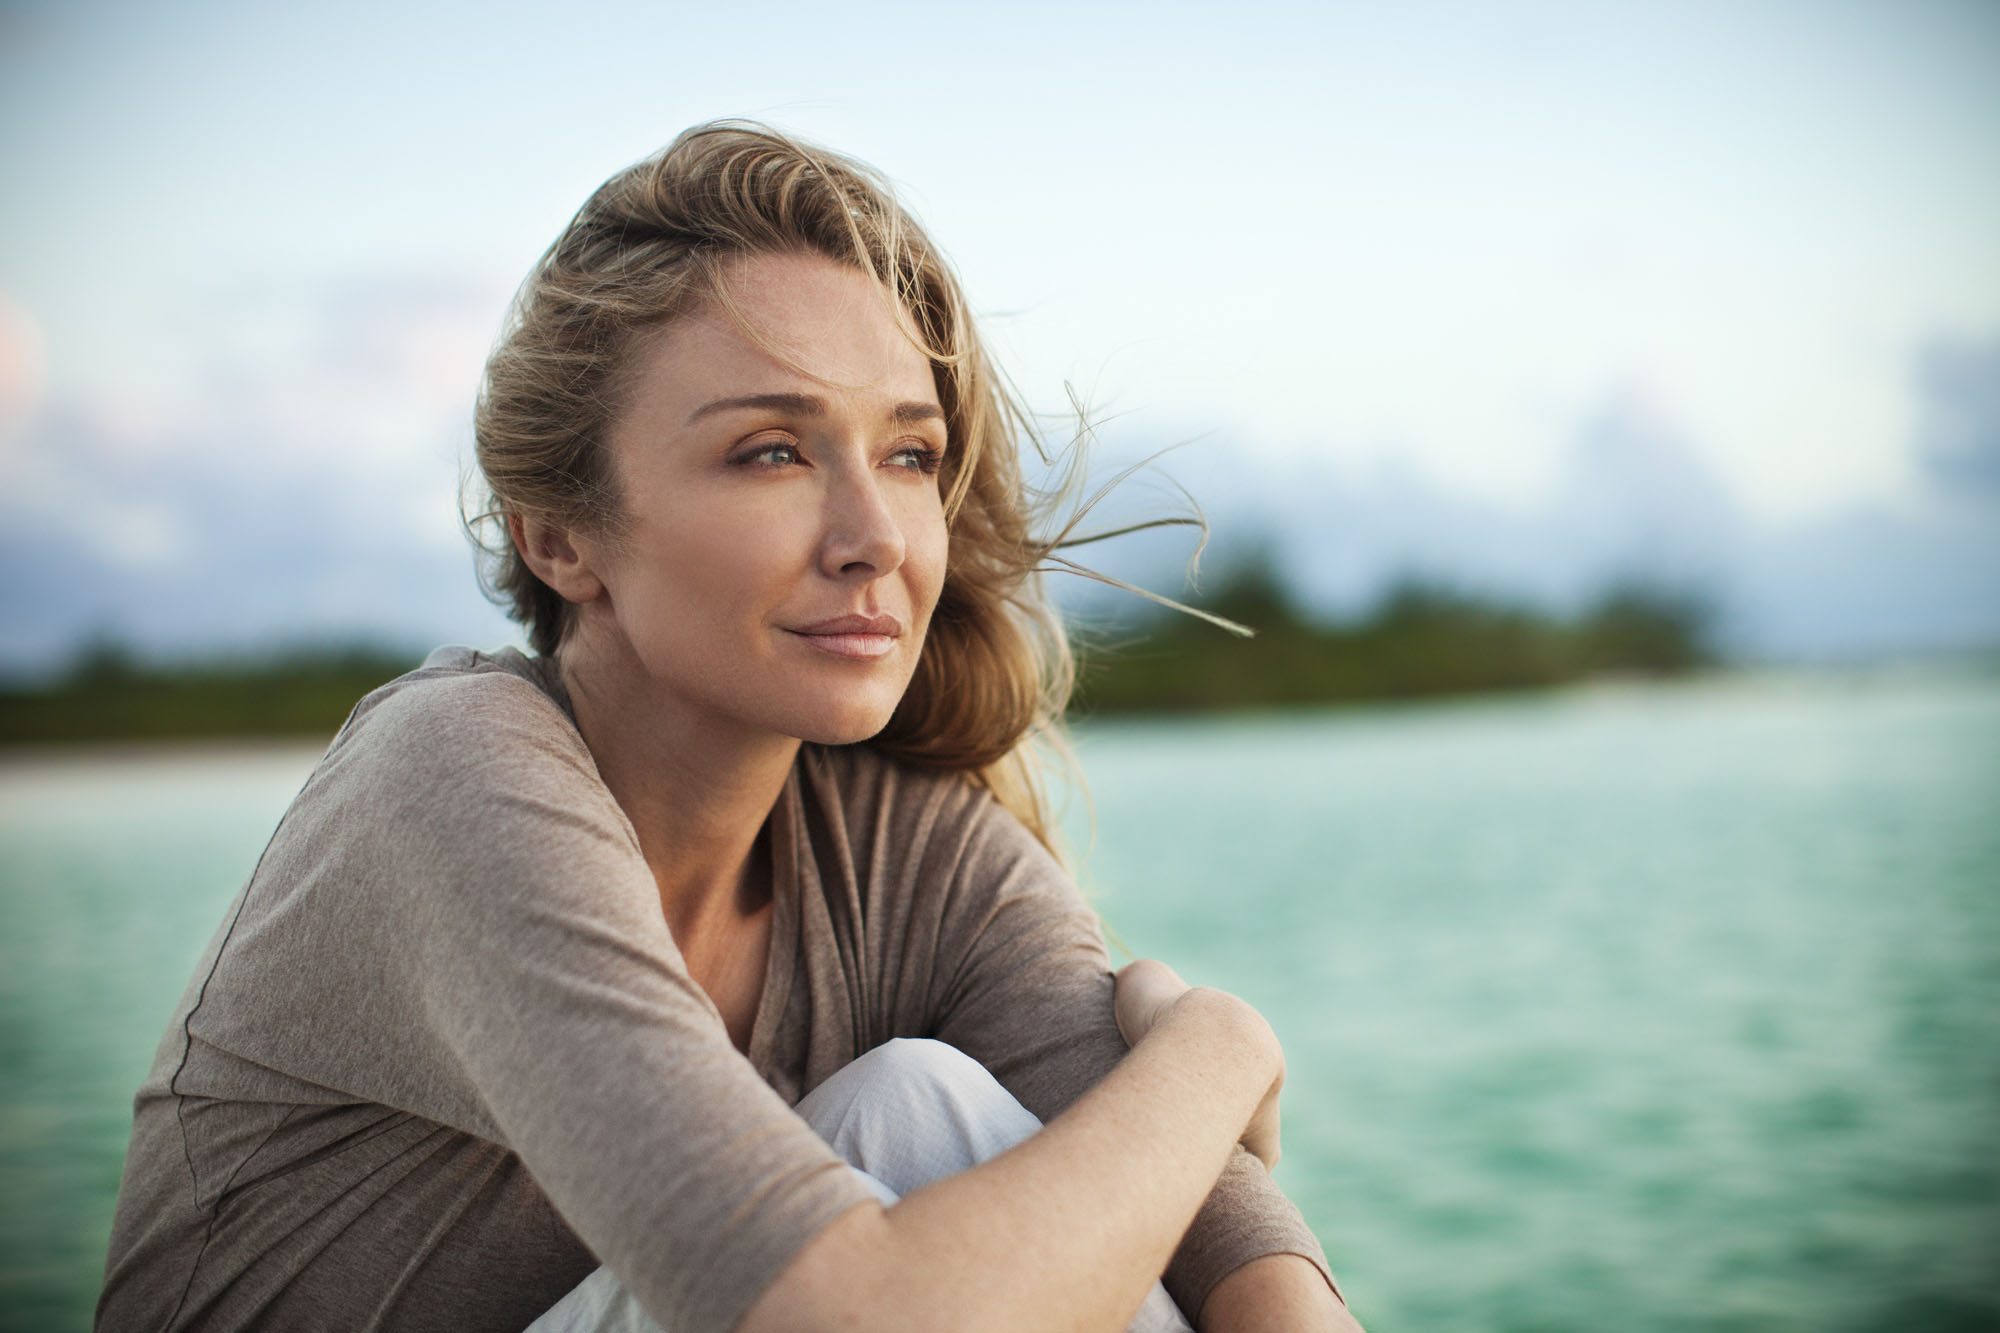 Alexandra Cousteau, granddaughter of Jacques Cousteau, will attend the Float For Life 2015 event.